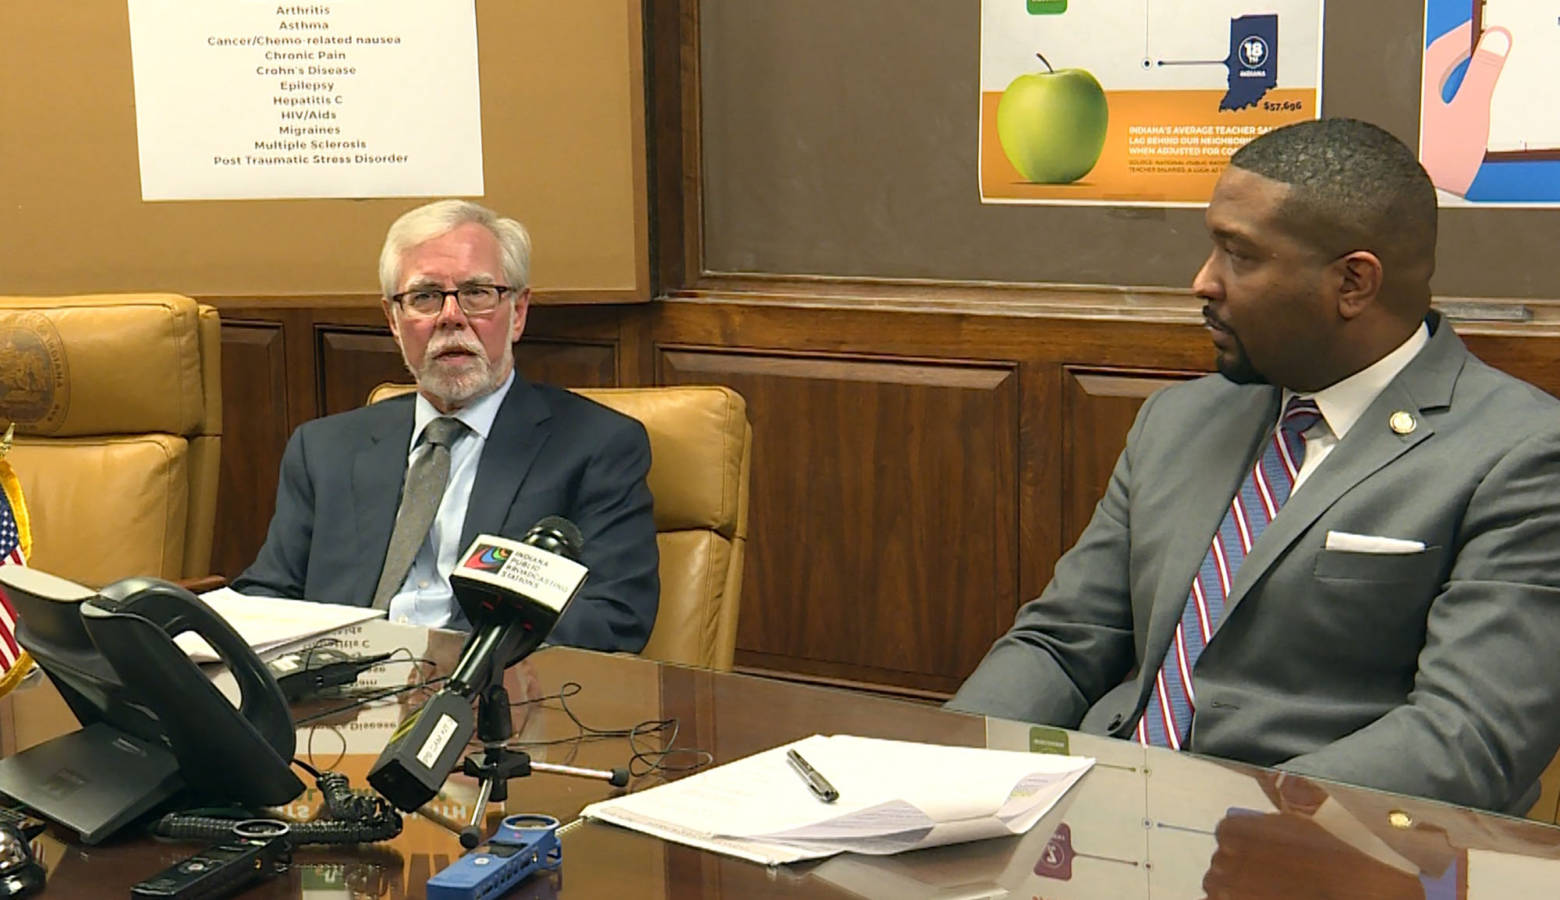 Senate Minority Leader Tim Lanane (D-Anderson) and Sen. Eddie Melton (D-Gary) outline the Senate Democrat legislative priorities, including: teacher pay, medical marijuana, pre-existing condition coverage and hate crimes. (Lauren Chapman/IPB News)